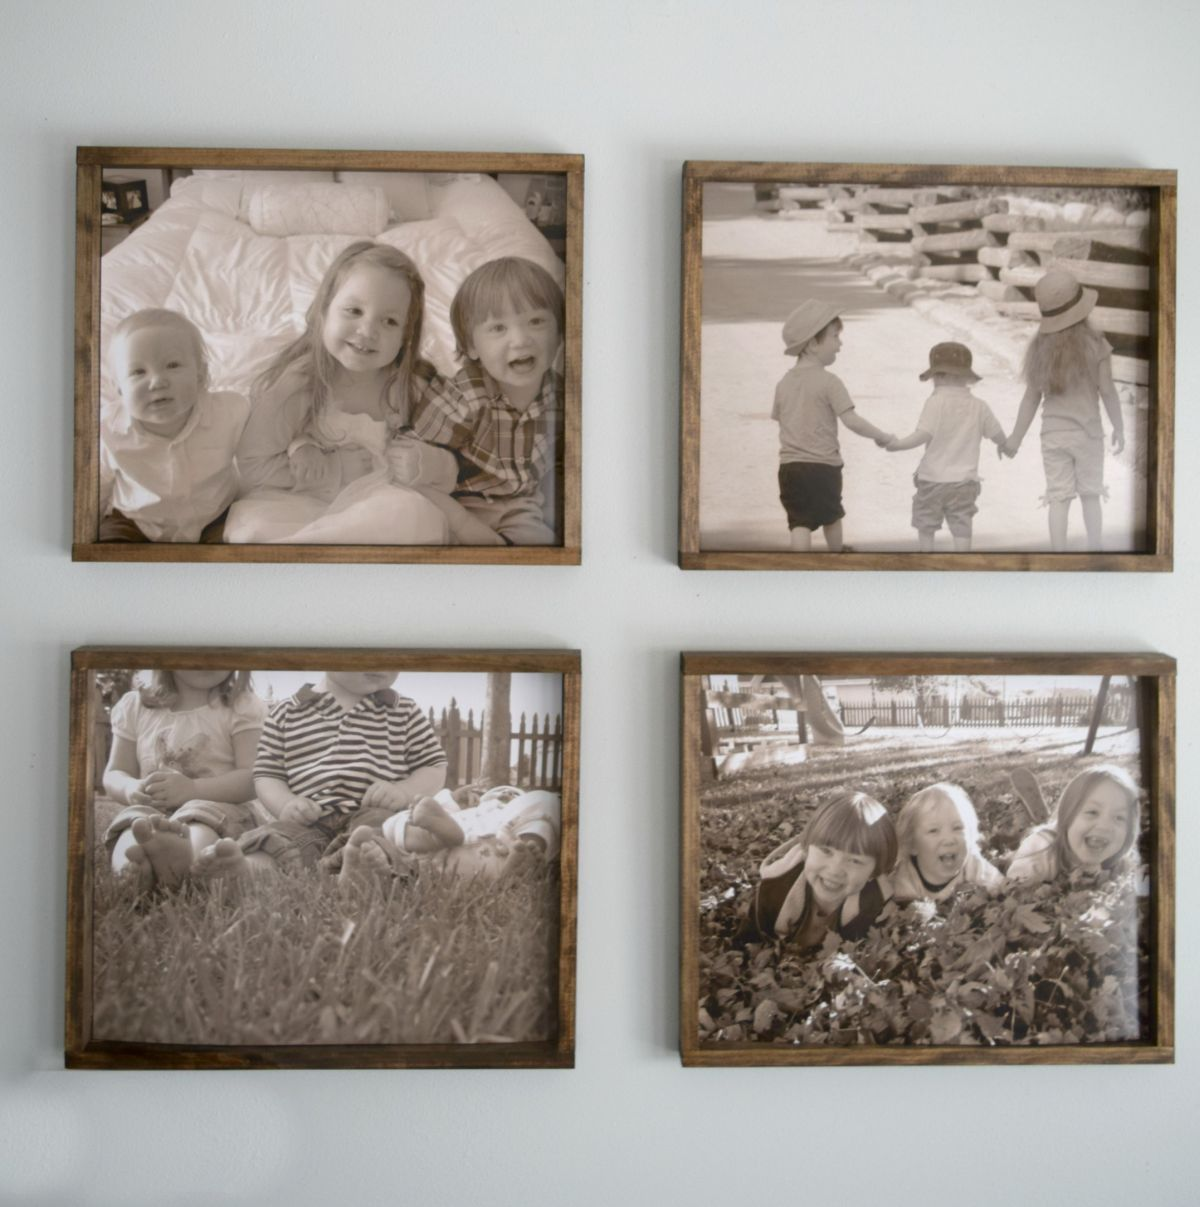 Diy rustic wood frame making pictures into memories rustic large rustic wood frame diy jeuxipadfo Images